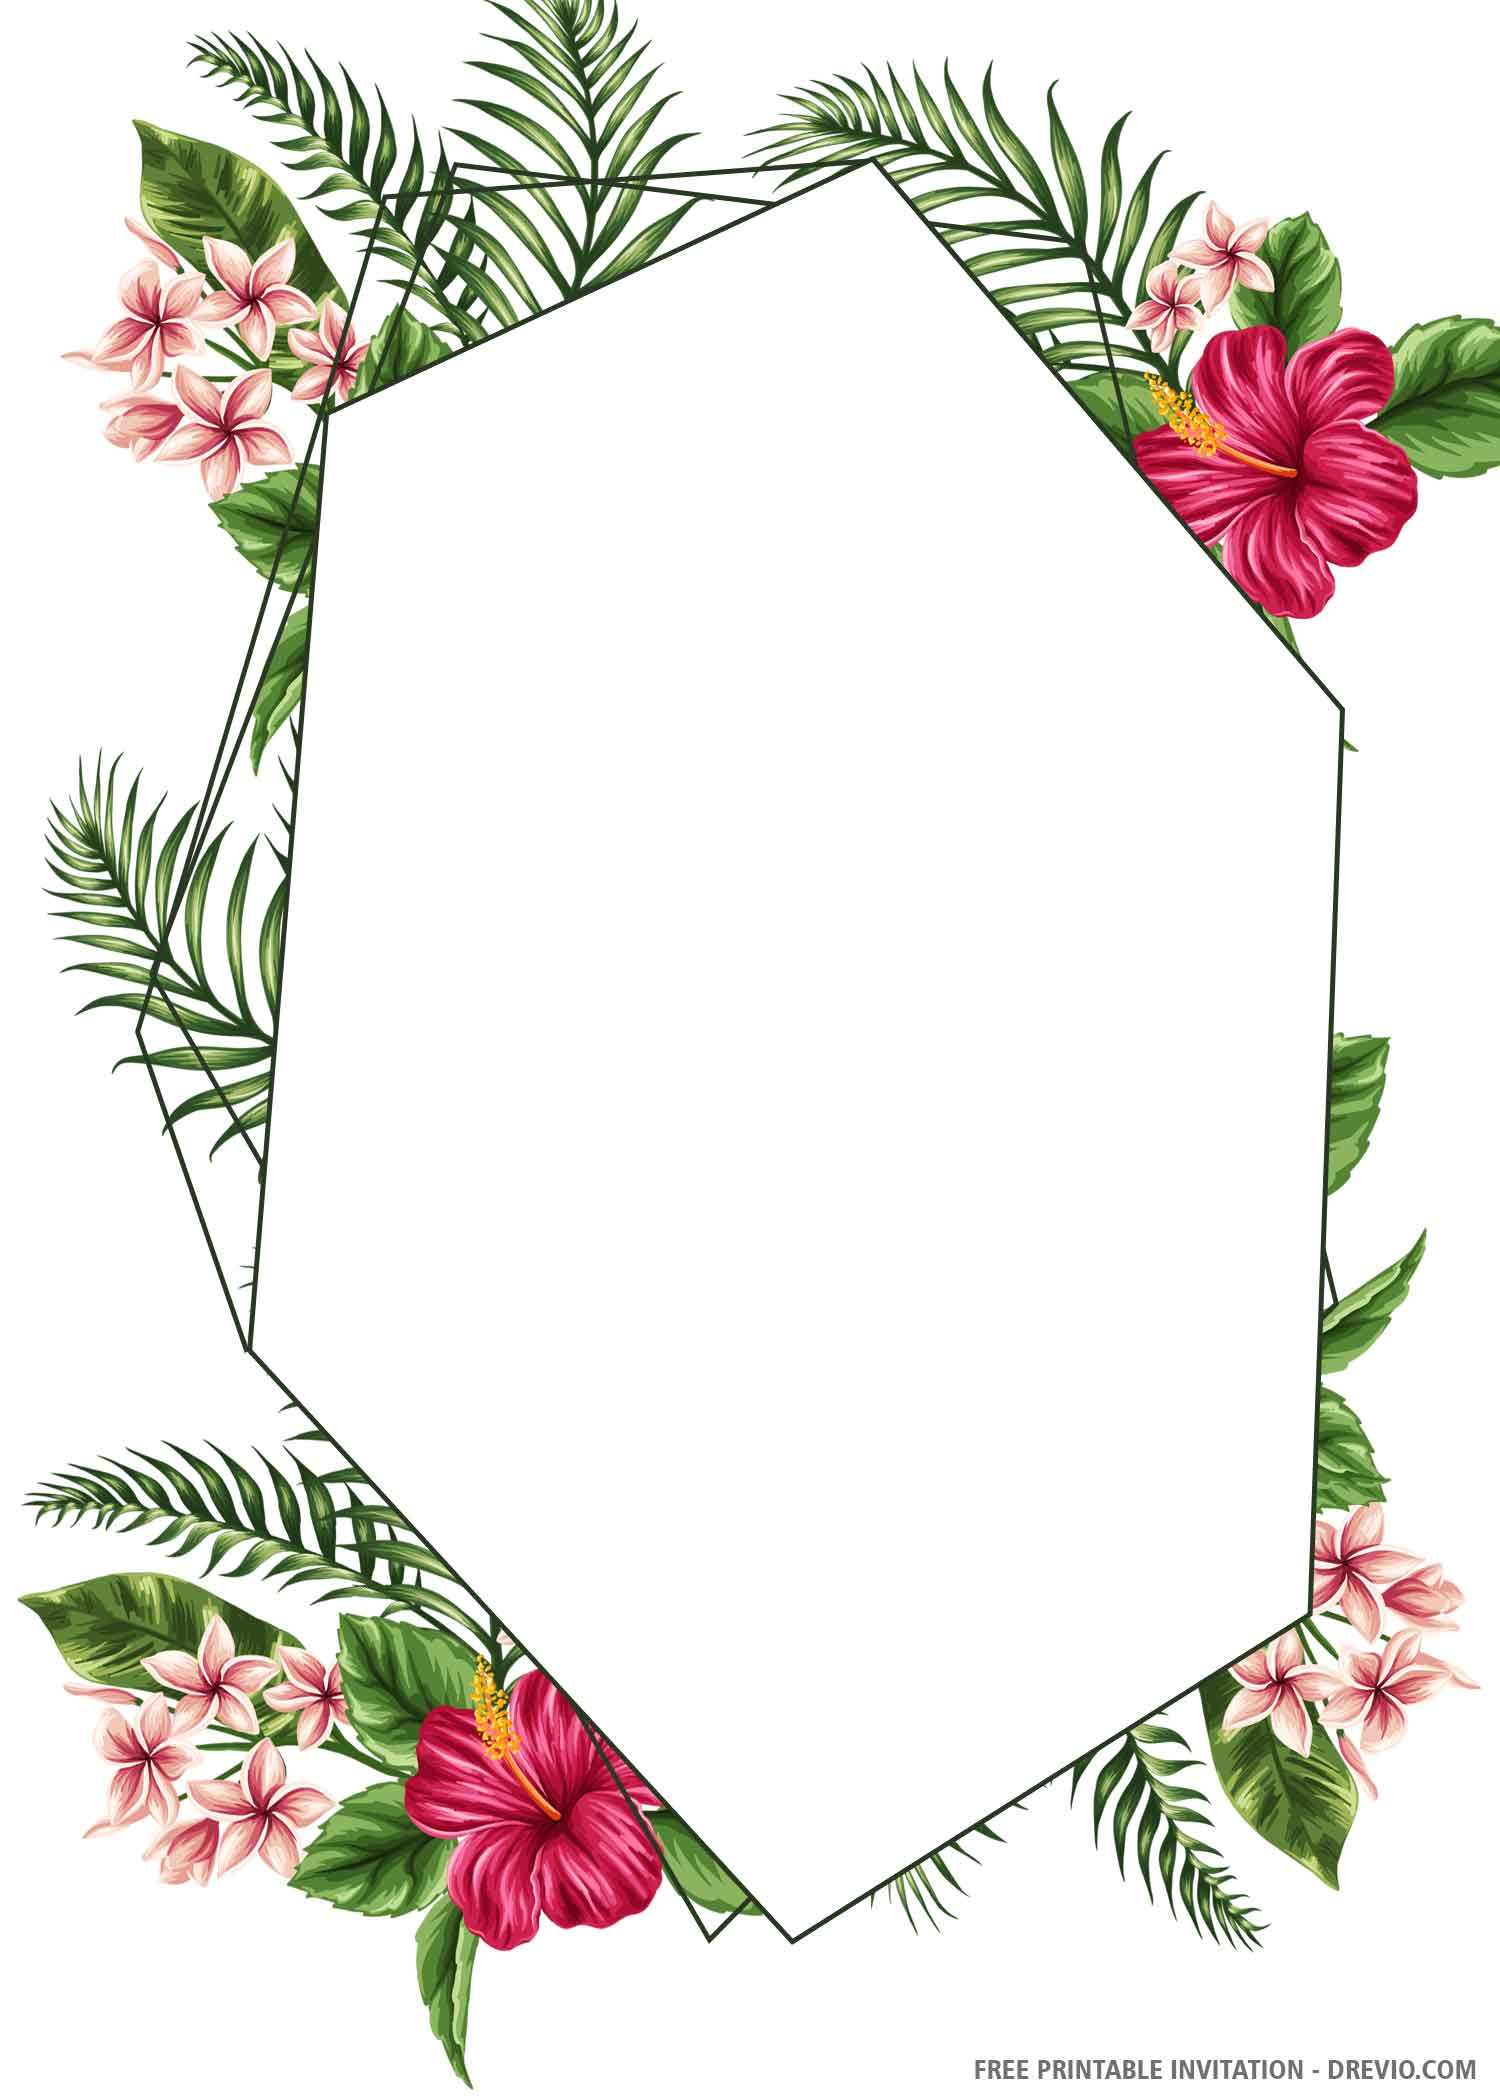 Free Printable Tropical Hexagon Wedding Invitation